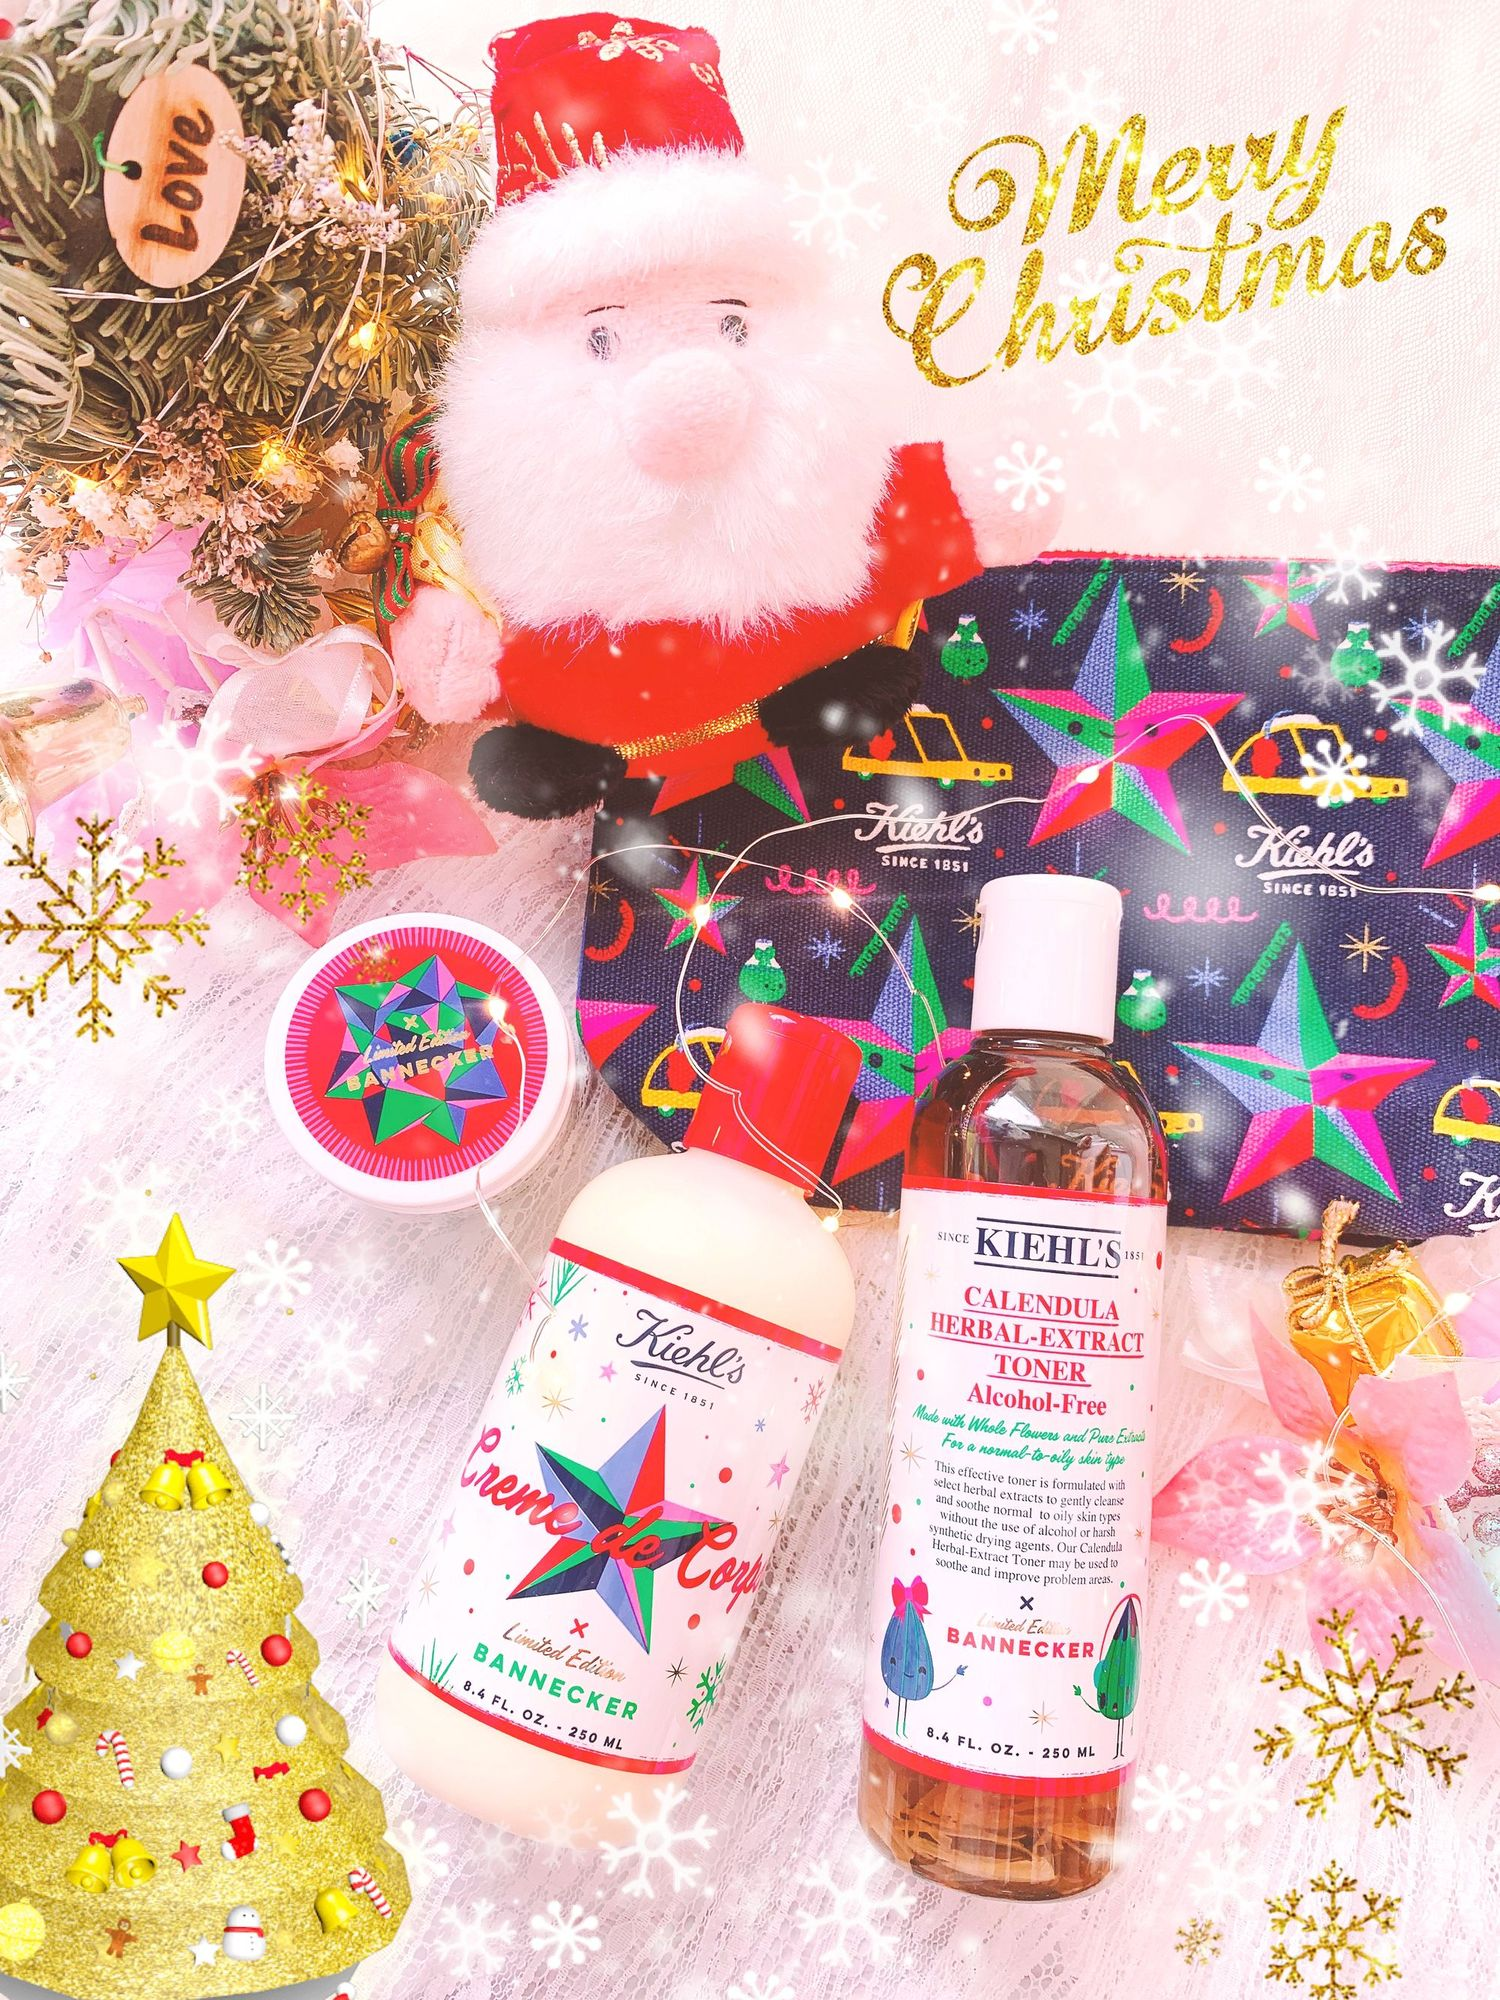 Kiehl's Happy Christmas is coming 全新六款節日限量版系列